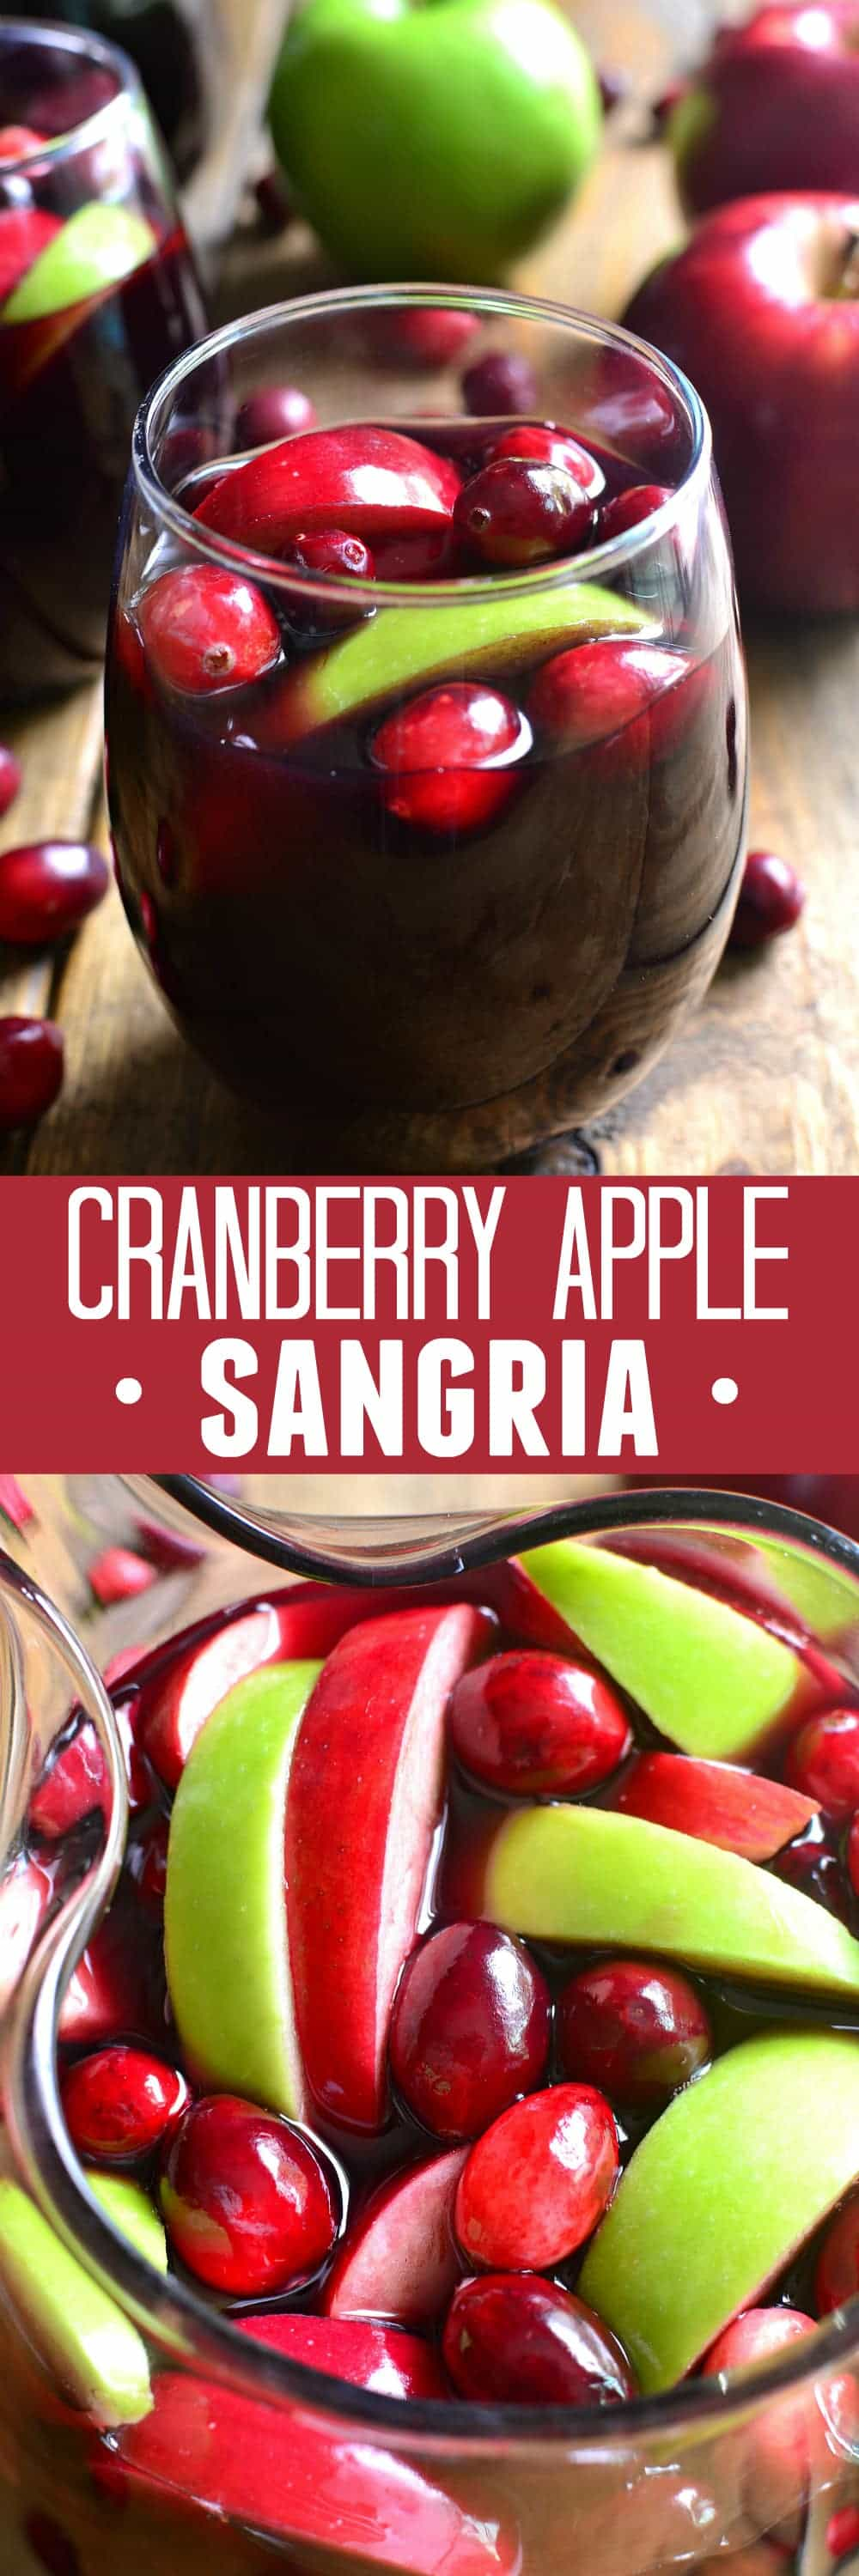 Collage image of Cranberry Apple Sangria